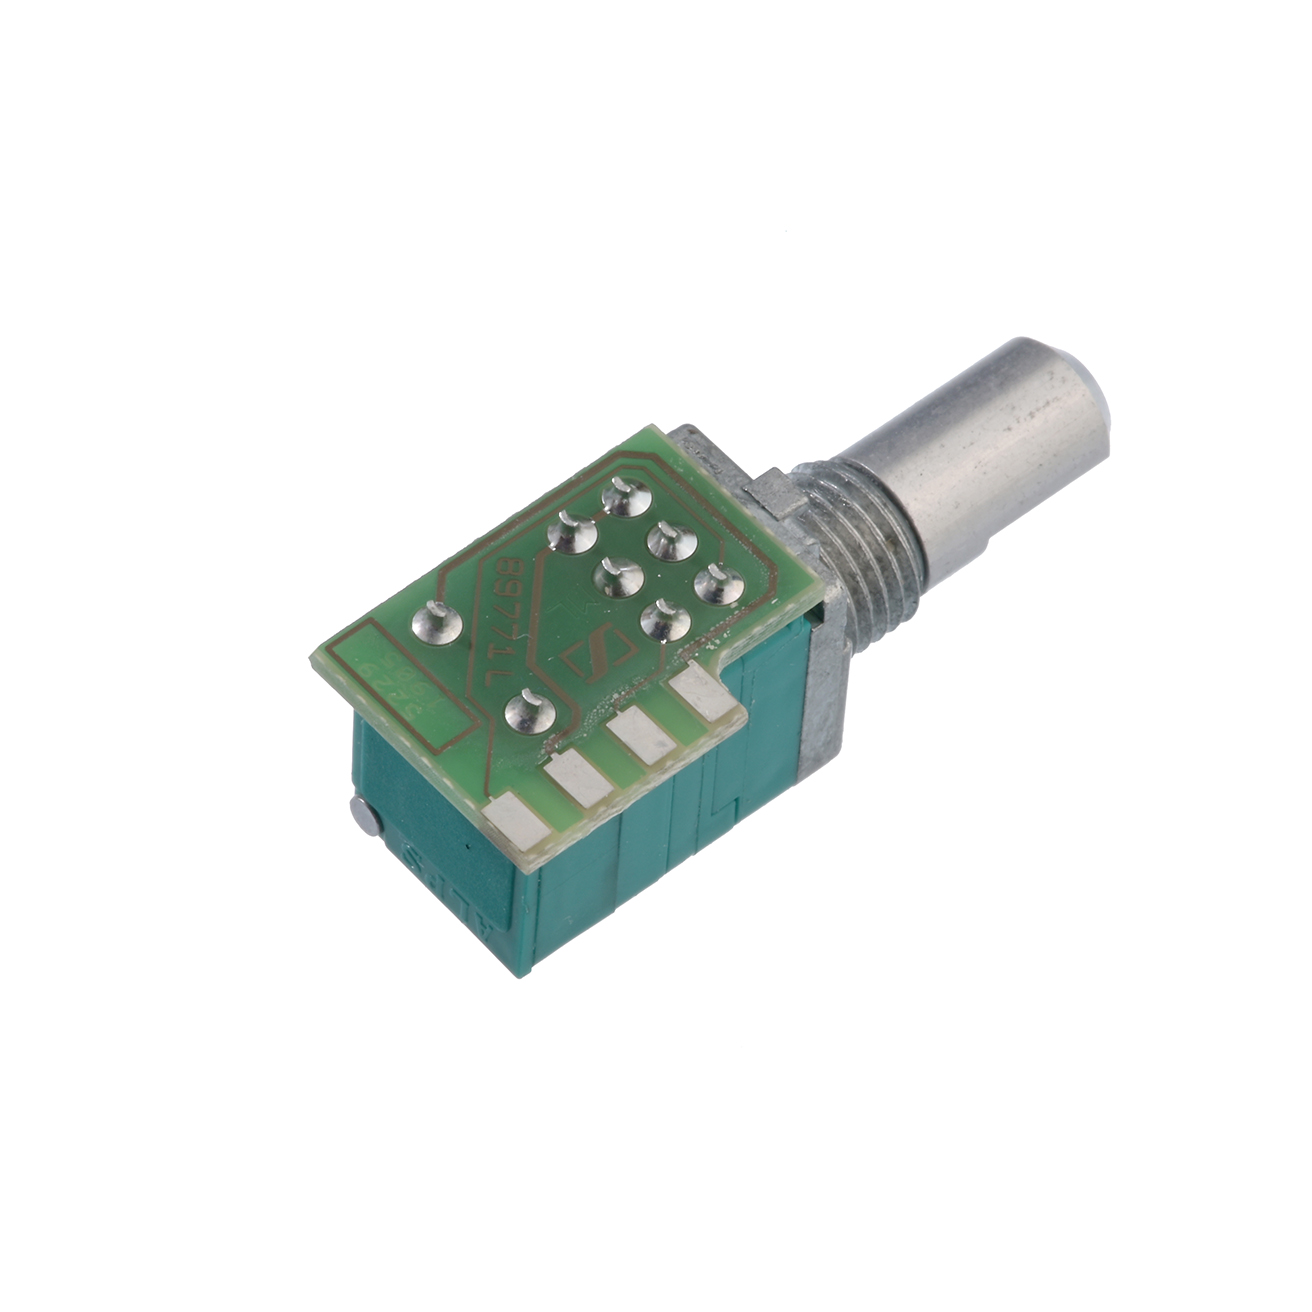 PCB Potentiometer